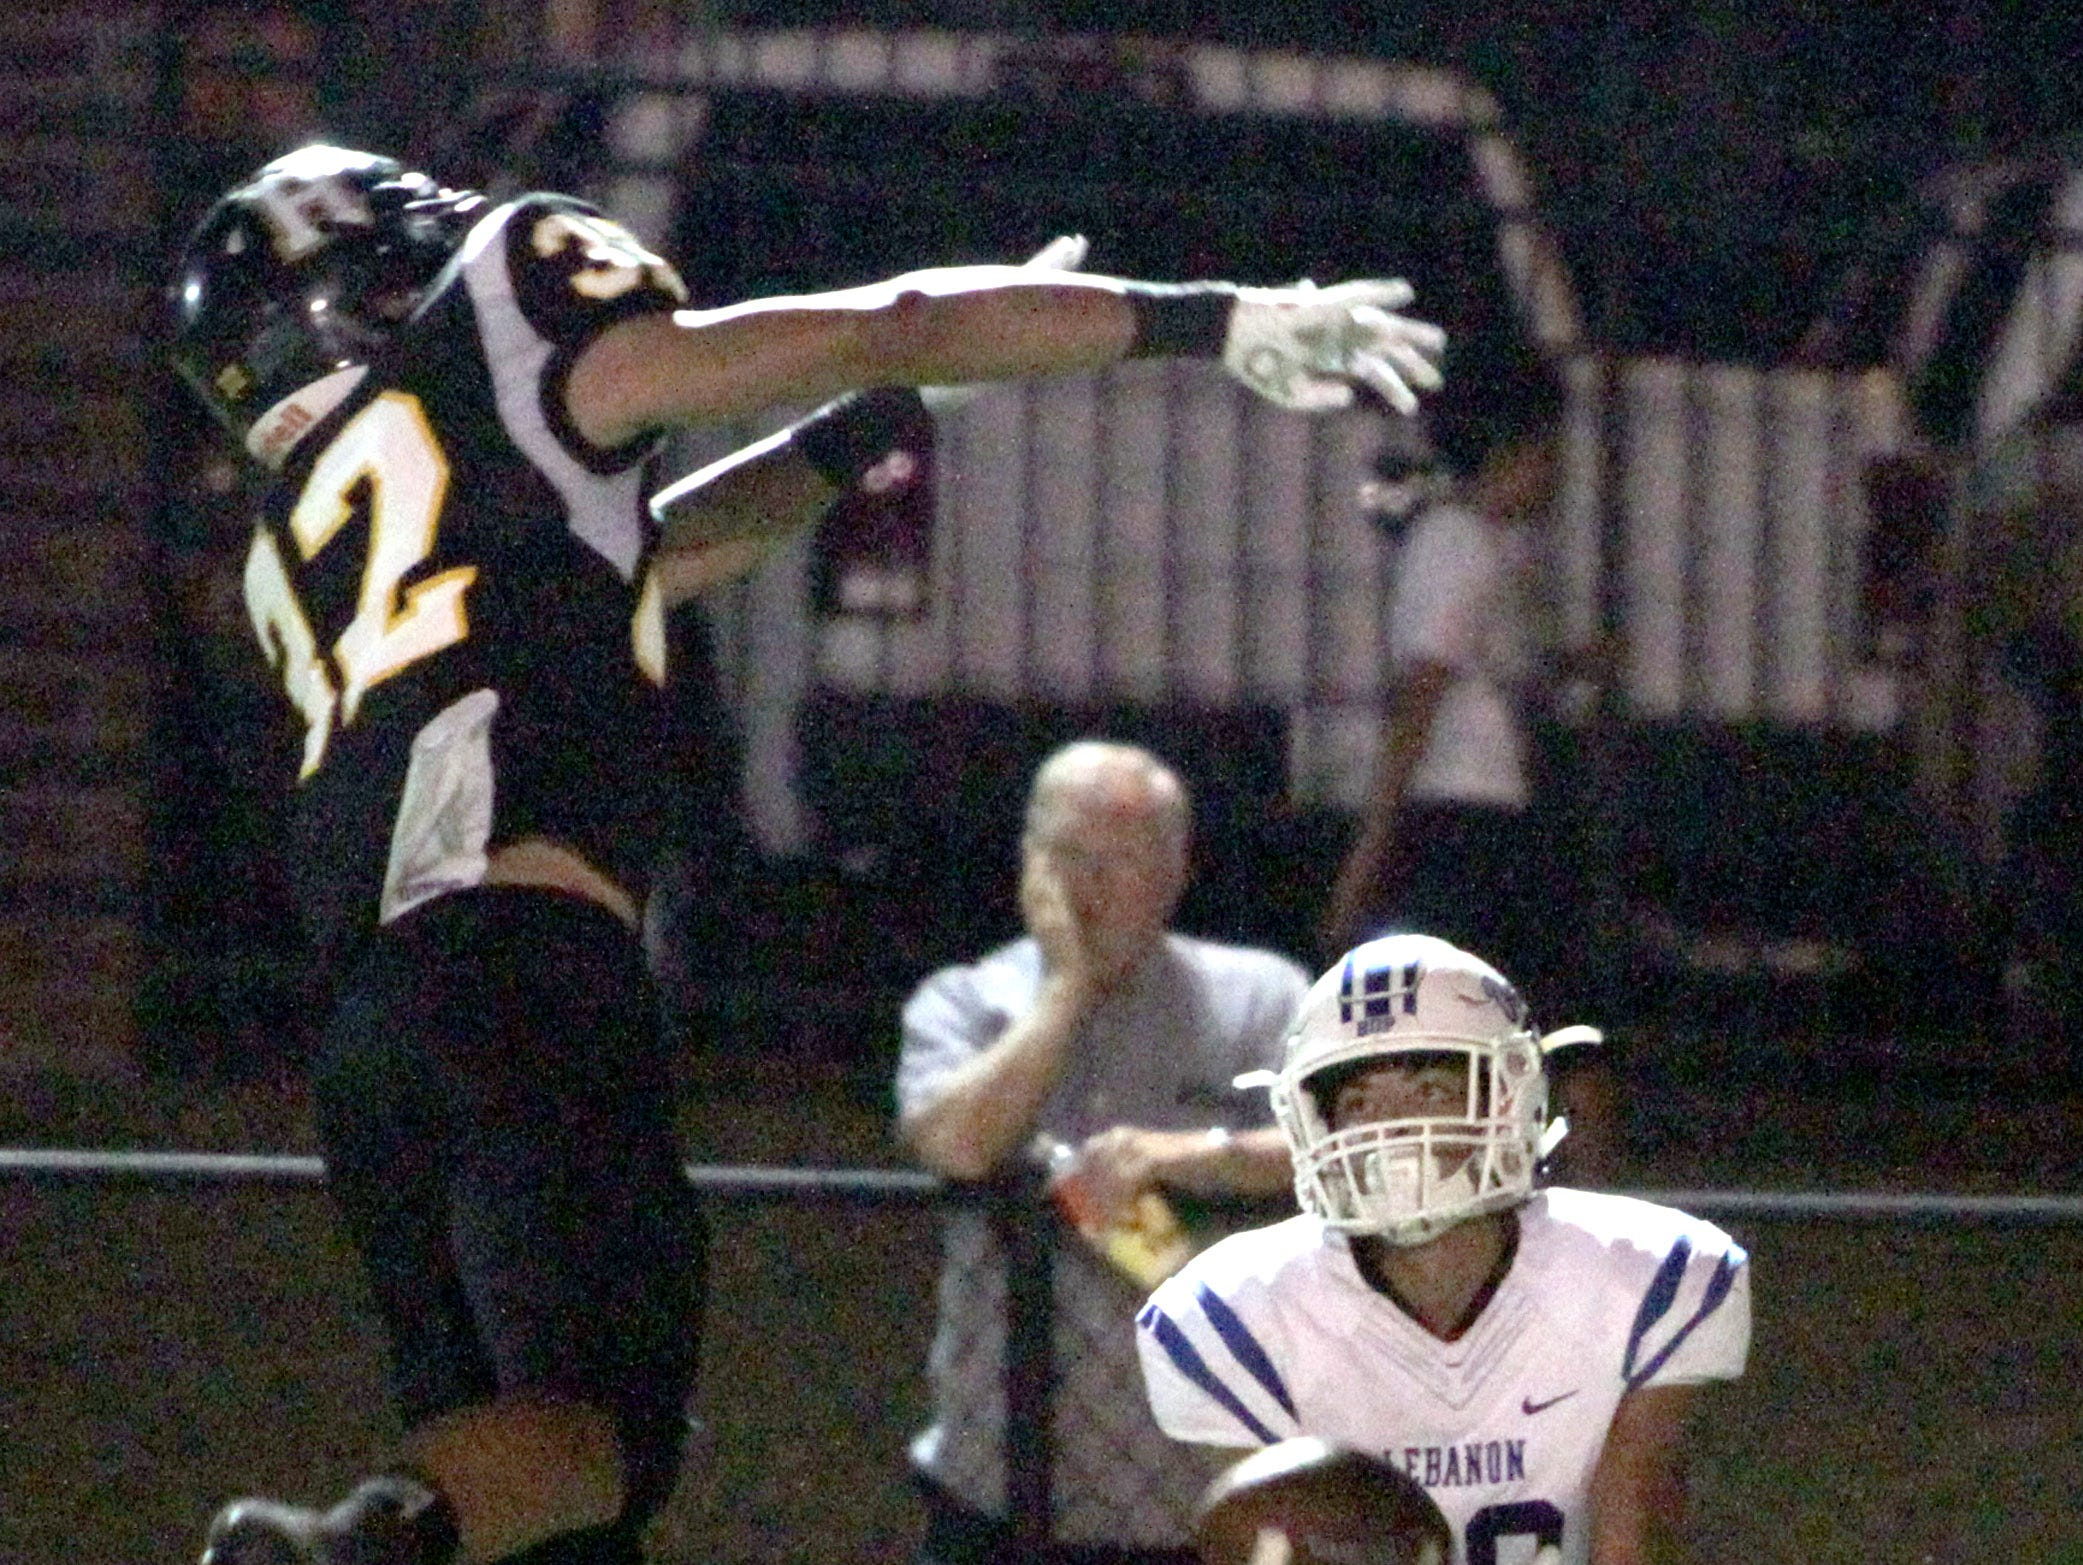 Hendersonville's Derek Kincaid swats the ball and Lebanon's Jackson Stafford almost catches the deflection on Friday, September 14, 2018.